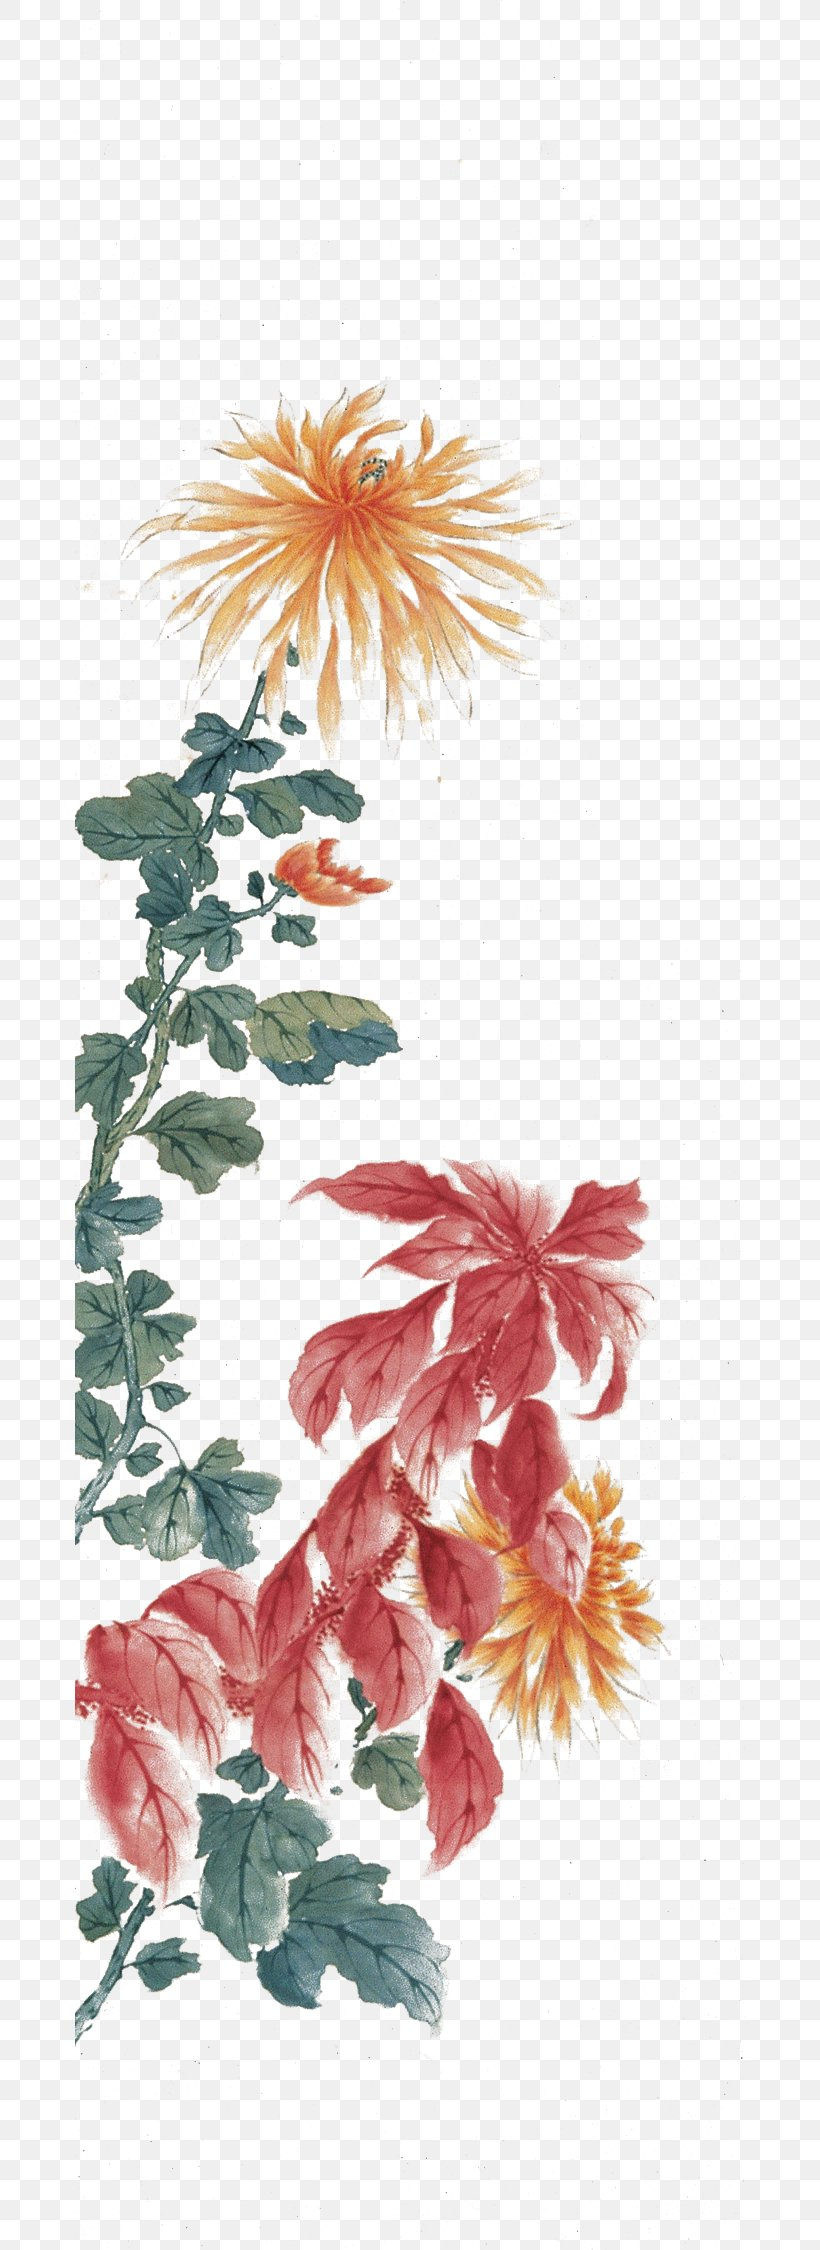 Watercolor Painting Floral Design Ink Wash Painting, PNG, 670x2250px, Watercolor Painting, Art, Branch, Creative Arts, Dahlia Download Free